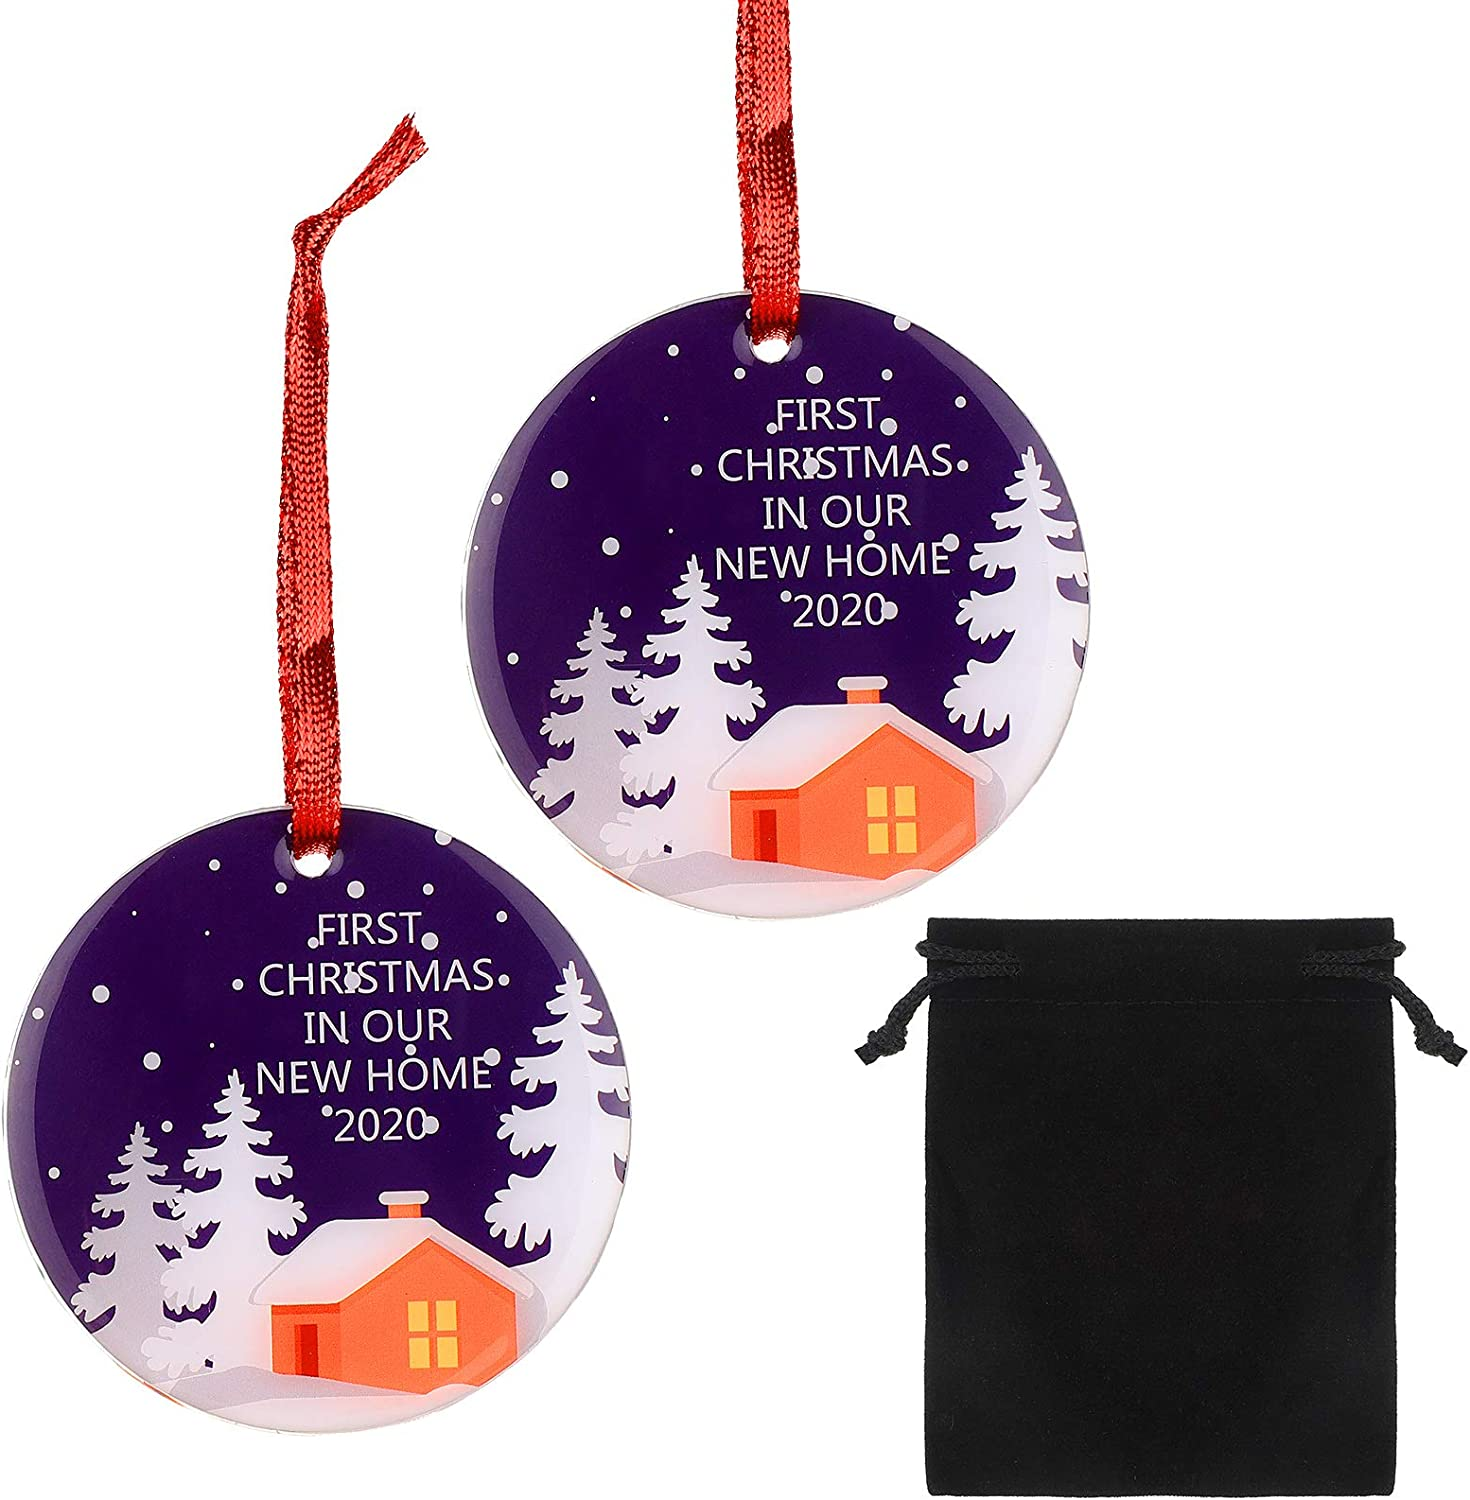 WILLBOND 2 Pieces First Christmas in Our New Home 2020 Christmas Ornament, Winter Woodland Ornament, Housewarming Homeowner Hanging Decor with Black Velvet Bag